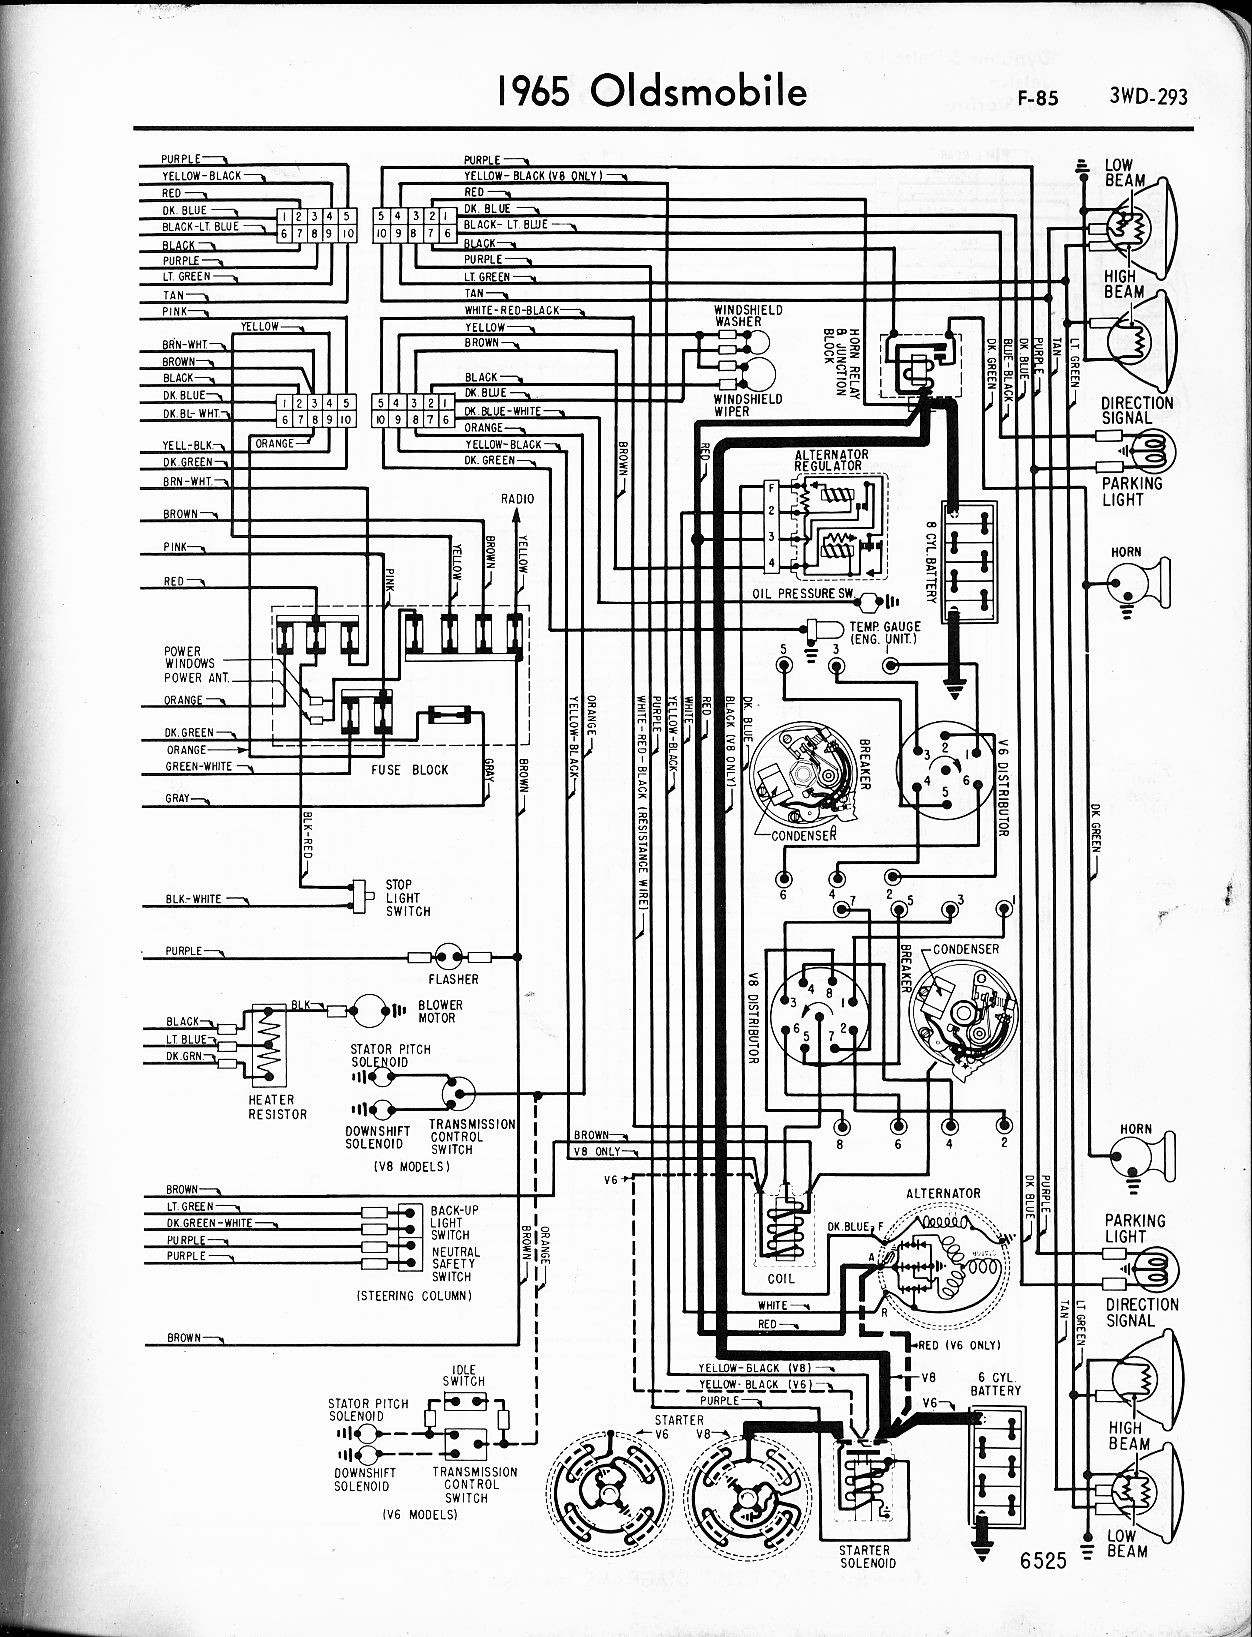 Wiring Diagram Radio For 1988 Oldsmobile - Wiring Diagram Work on